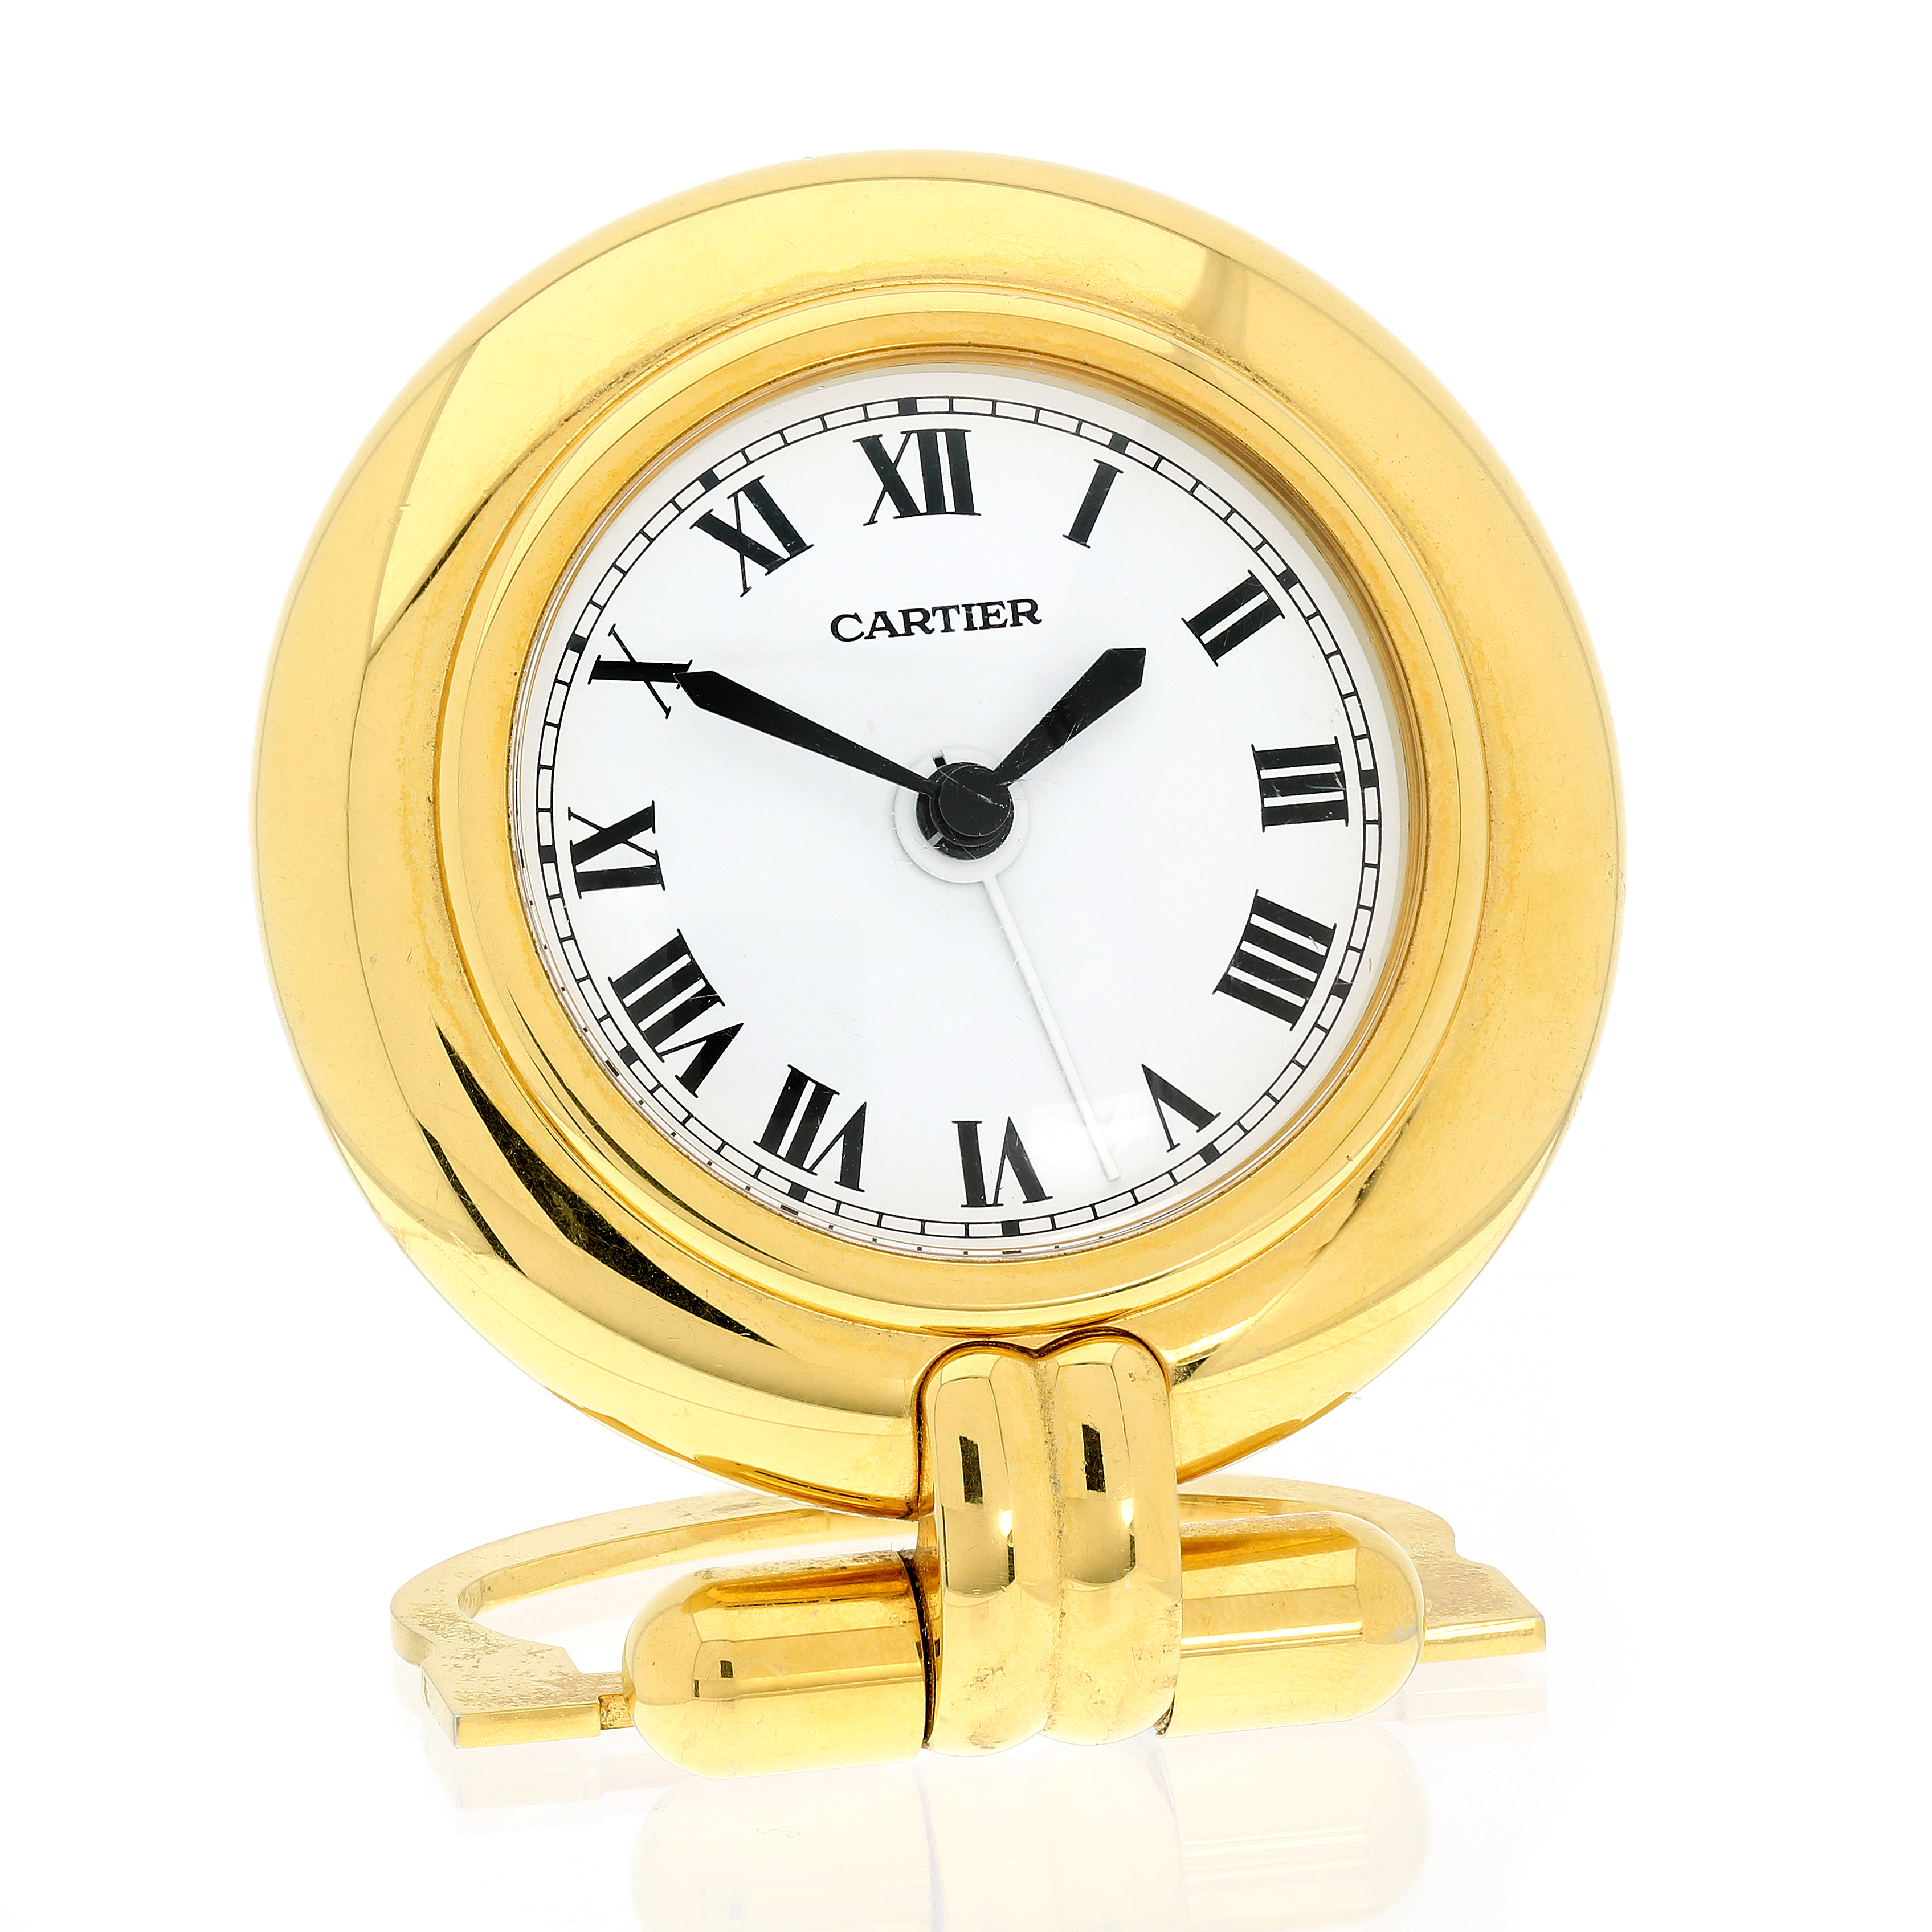 A VINTAGE TRAVEL / DESK CLOCK, CARTIER CIRCA 1980 24 carat gold plated, of circular form with a